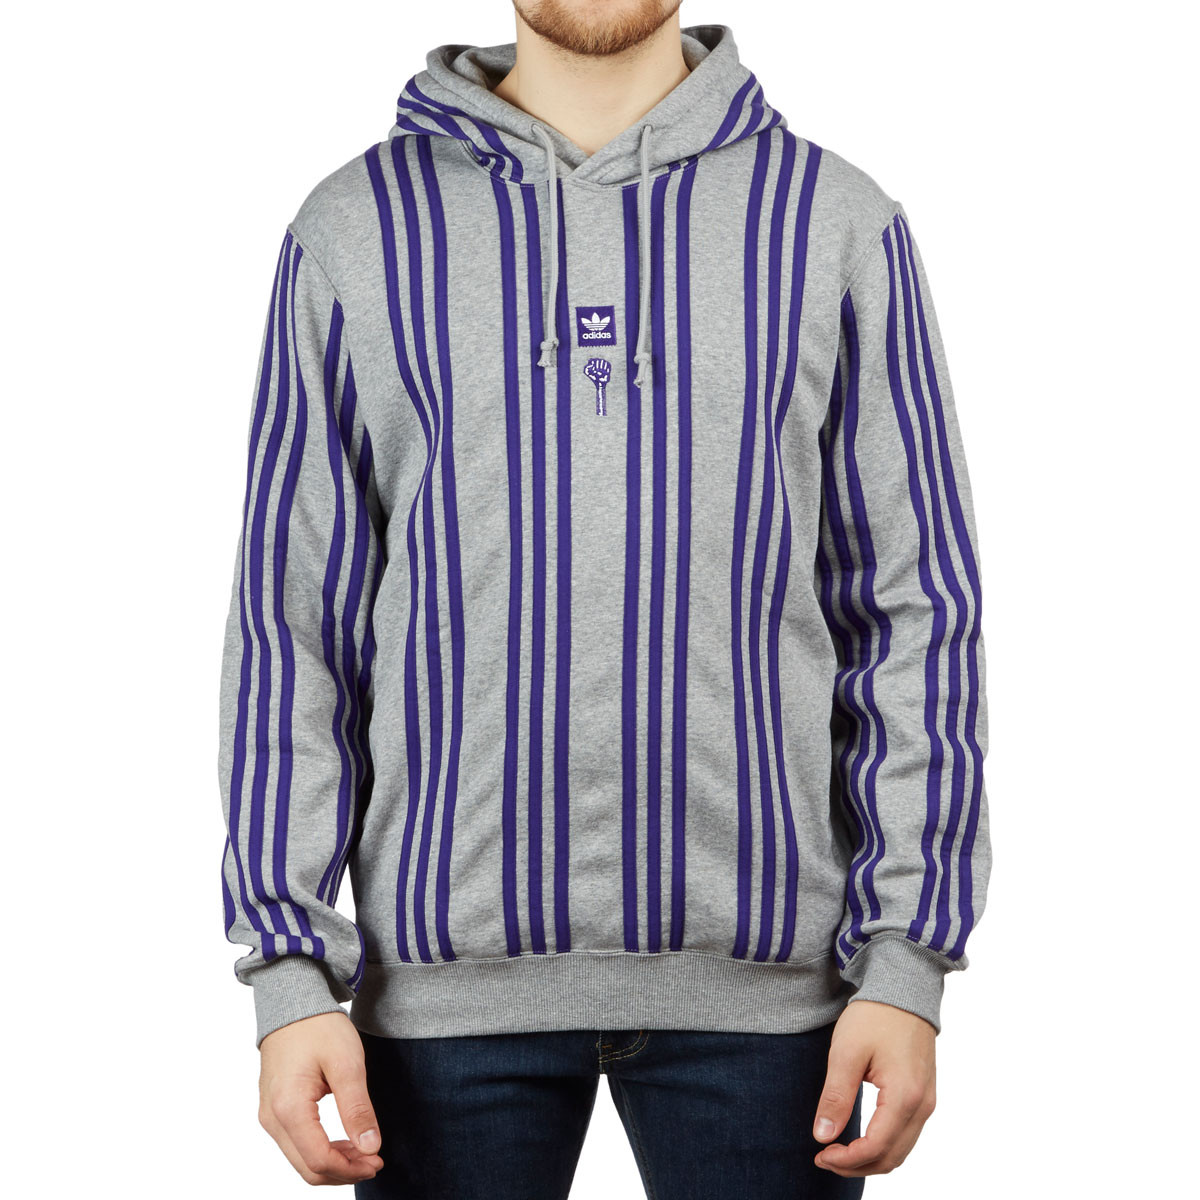 Adidas x Hardies Hoodie Core HeatherCollegiate Purple